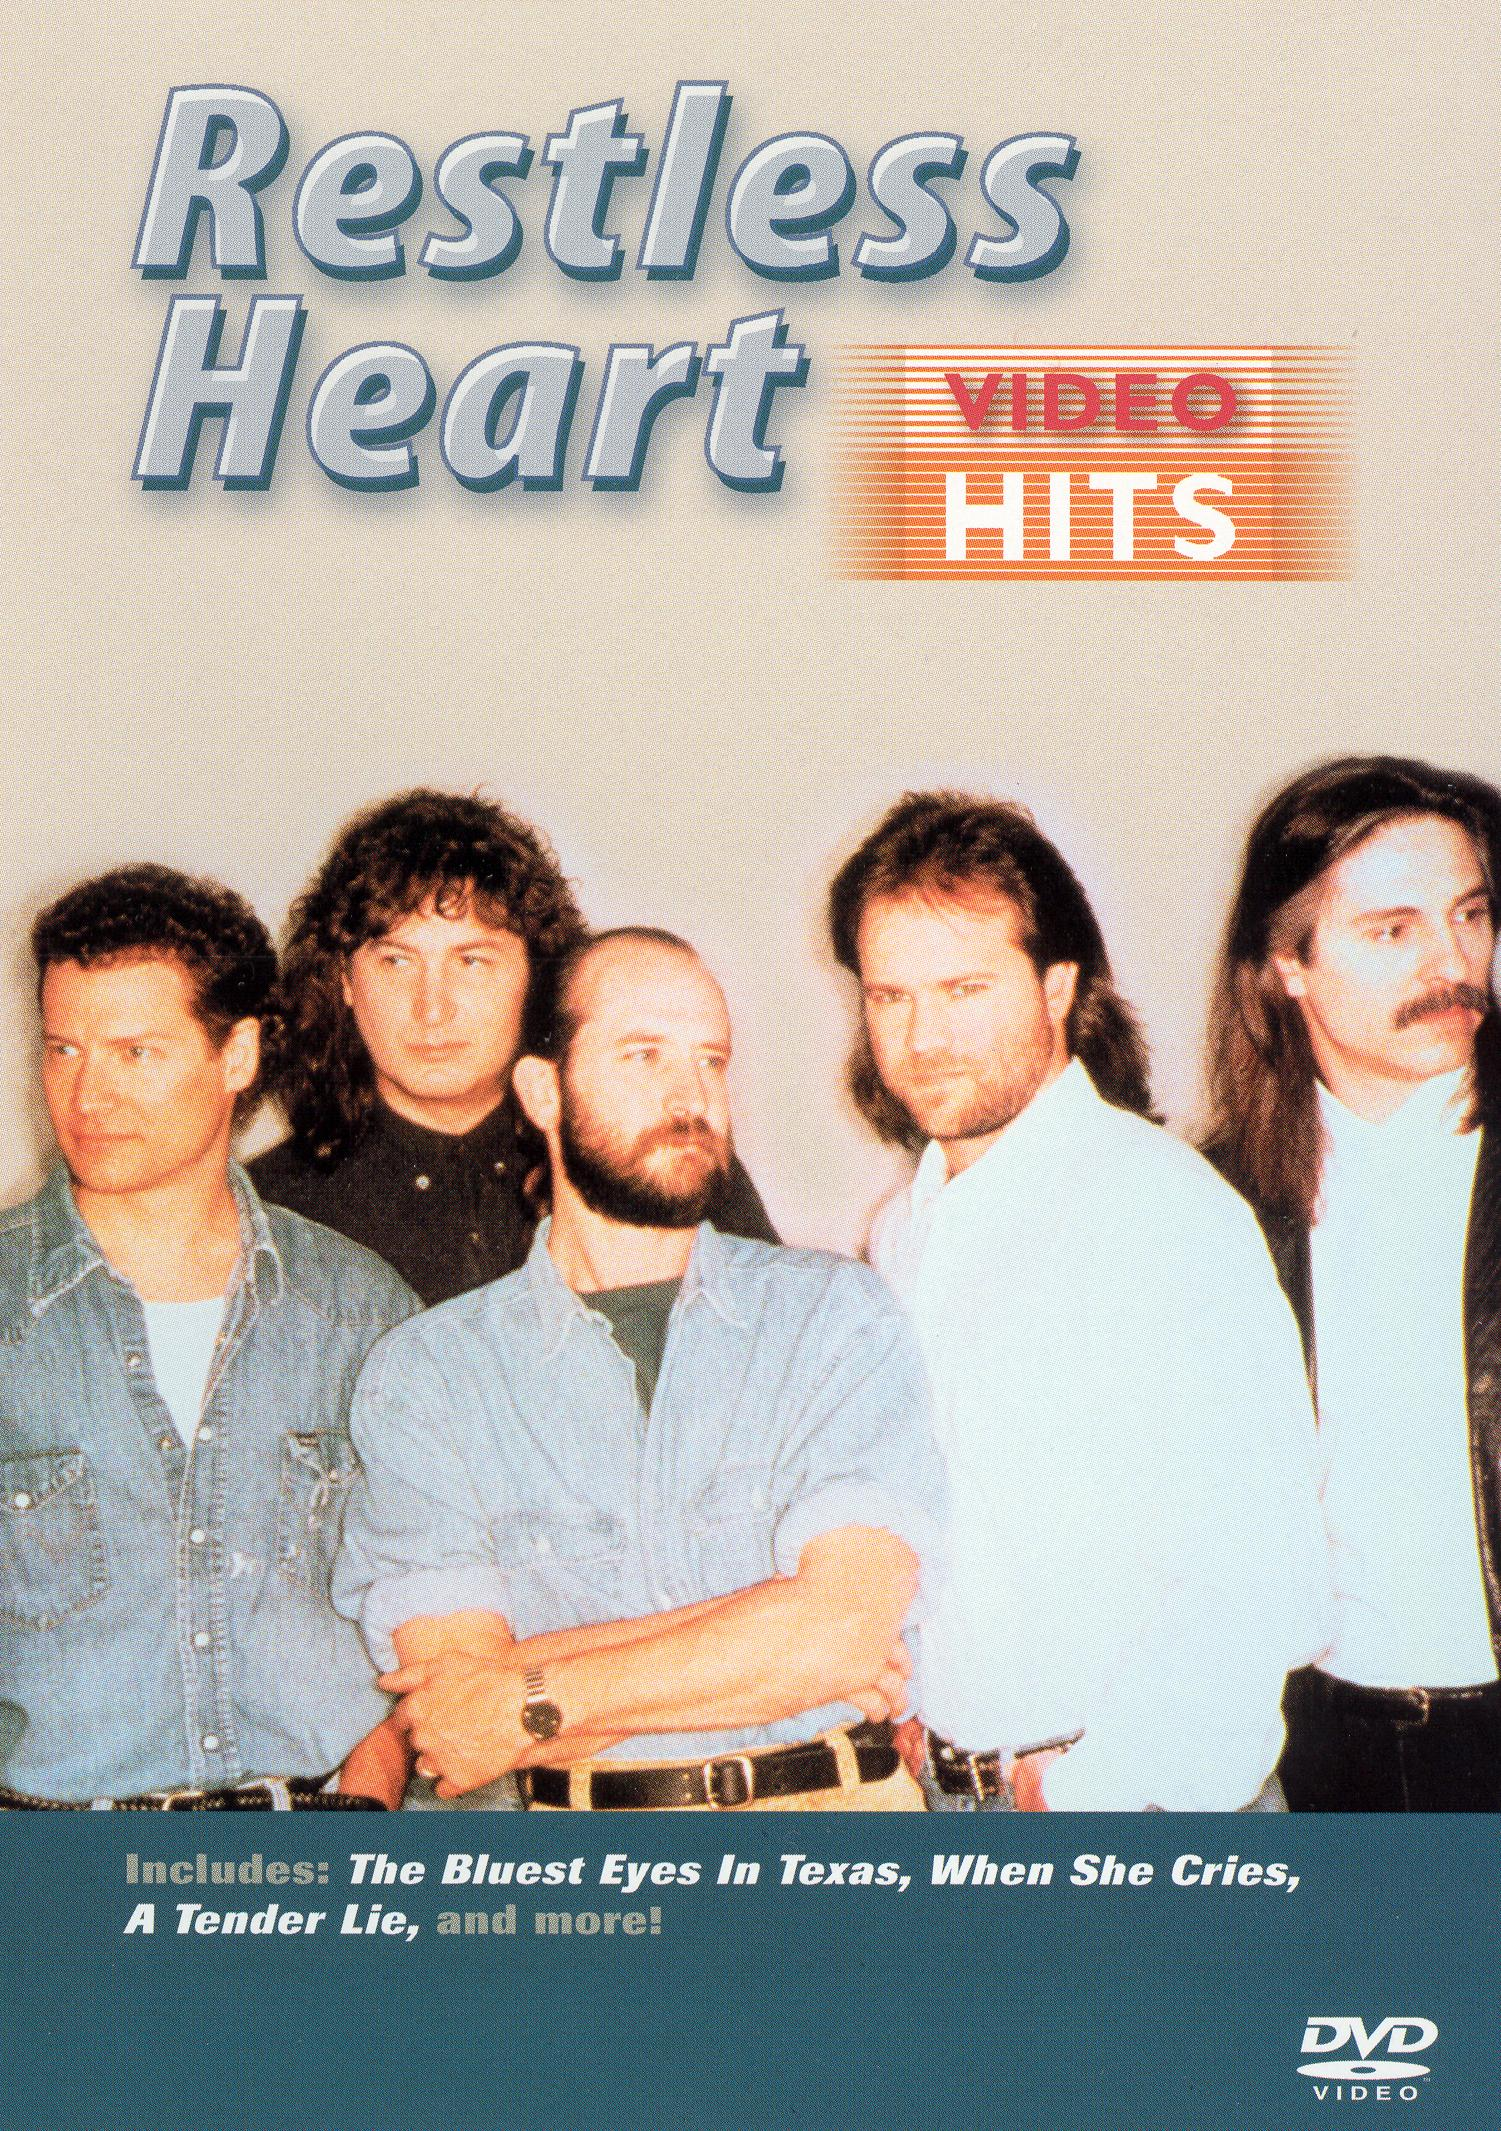 Restless Heart: Video Hits